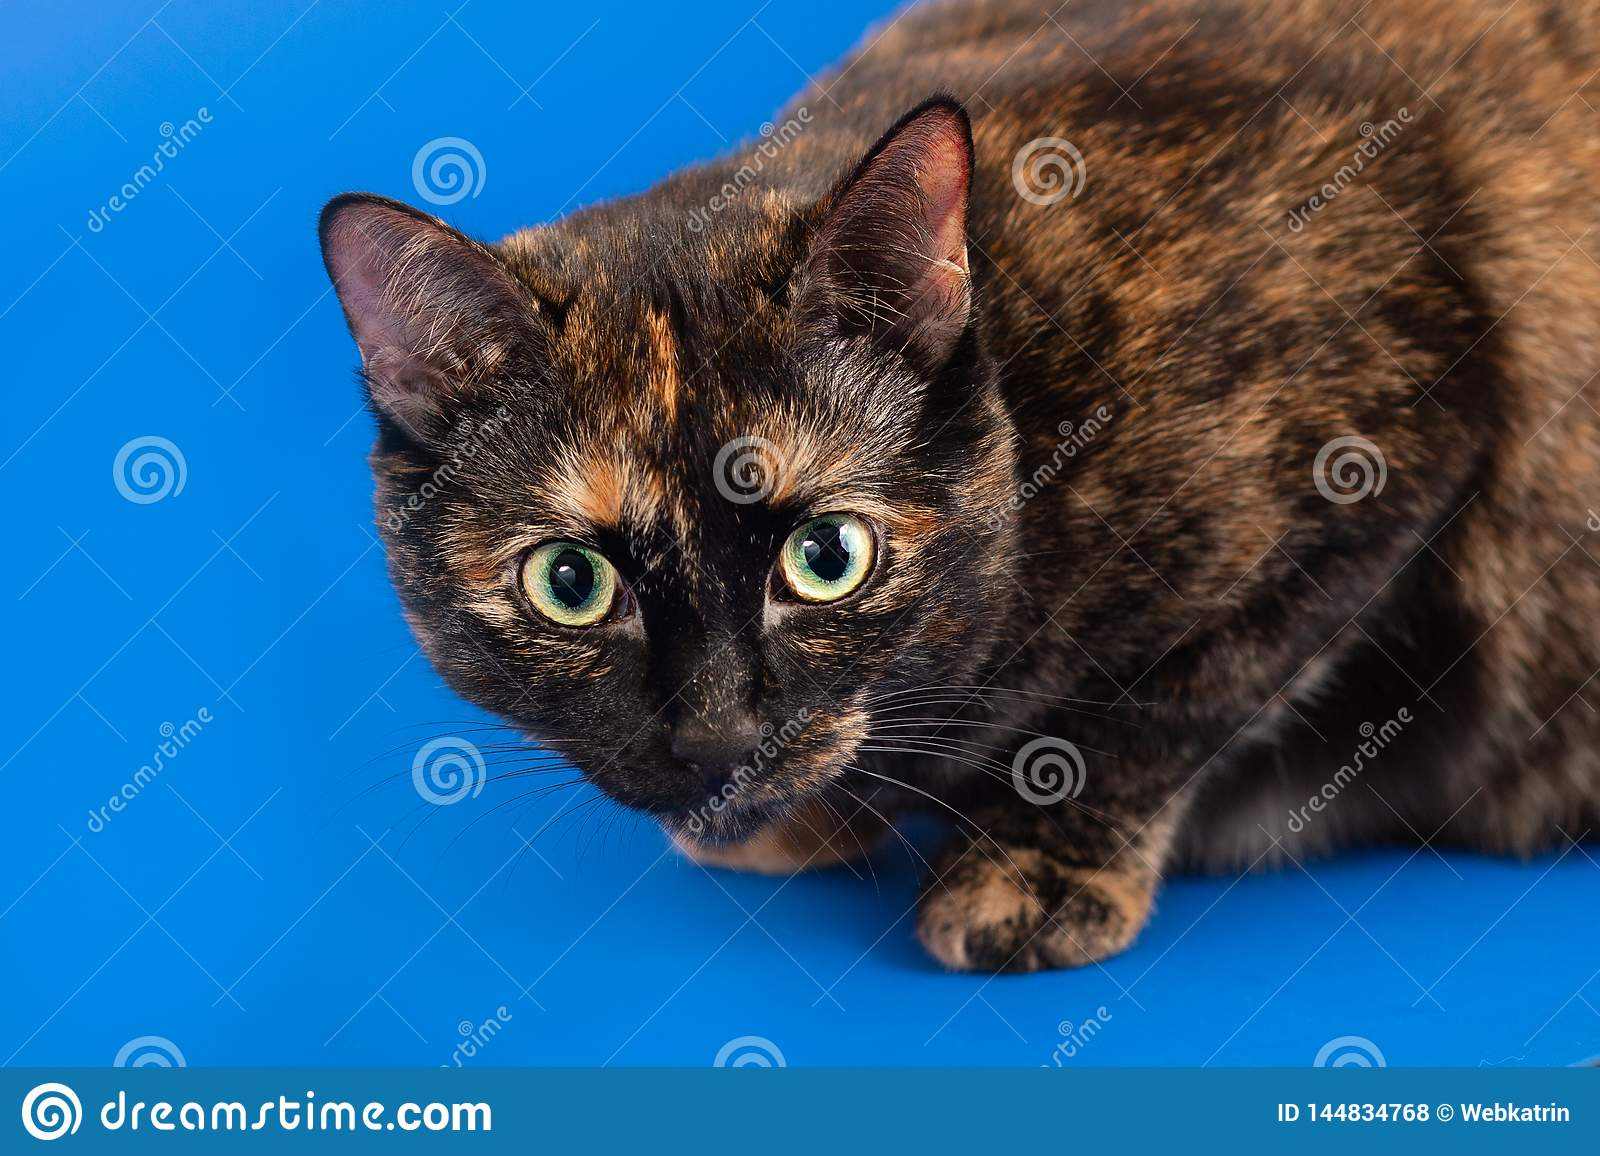 Black And Red Tortoiseshell Cat On A Blue Background Stock ...